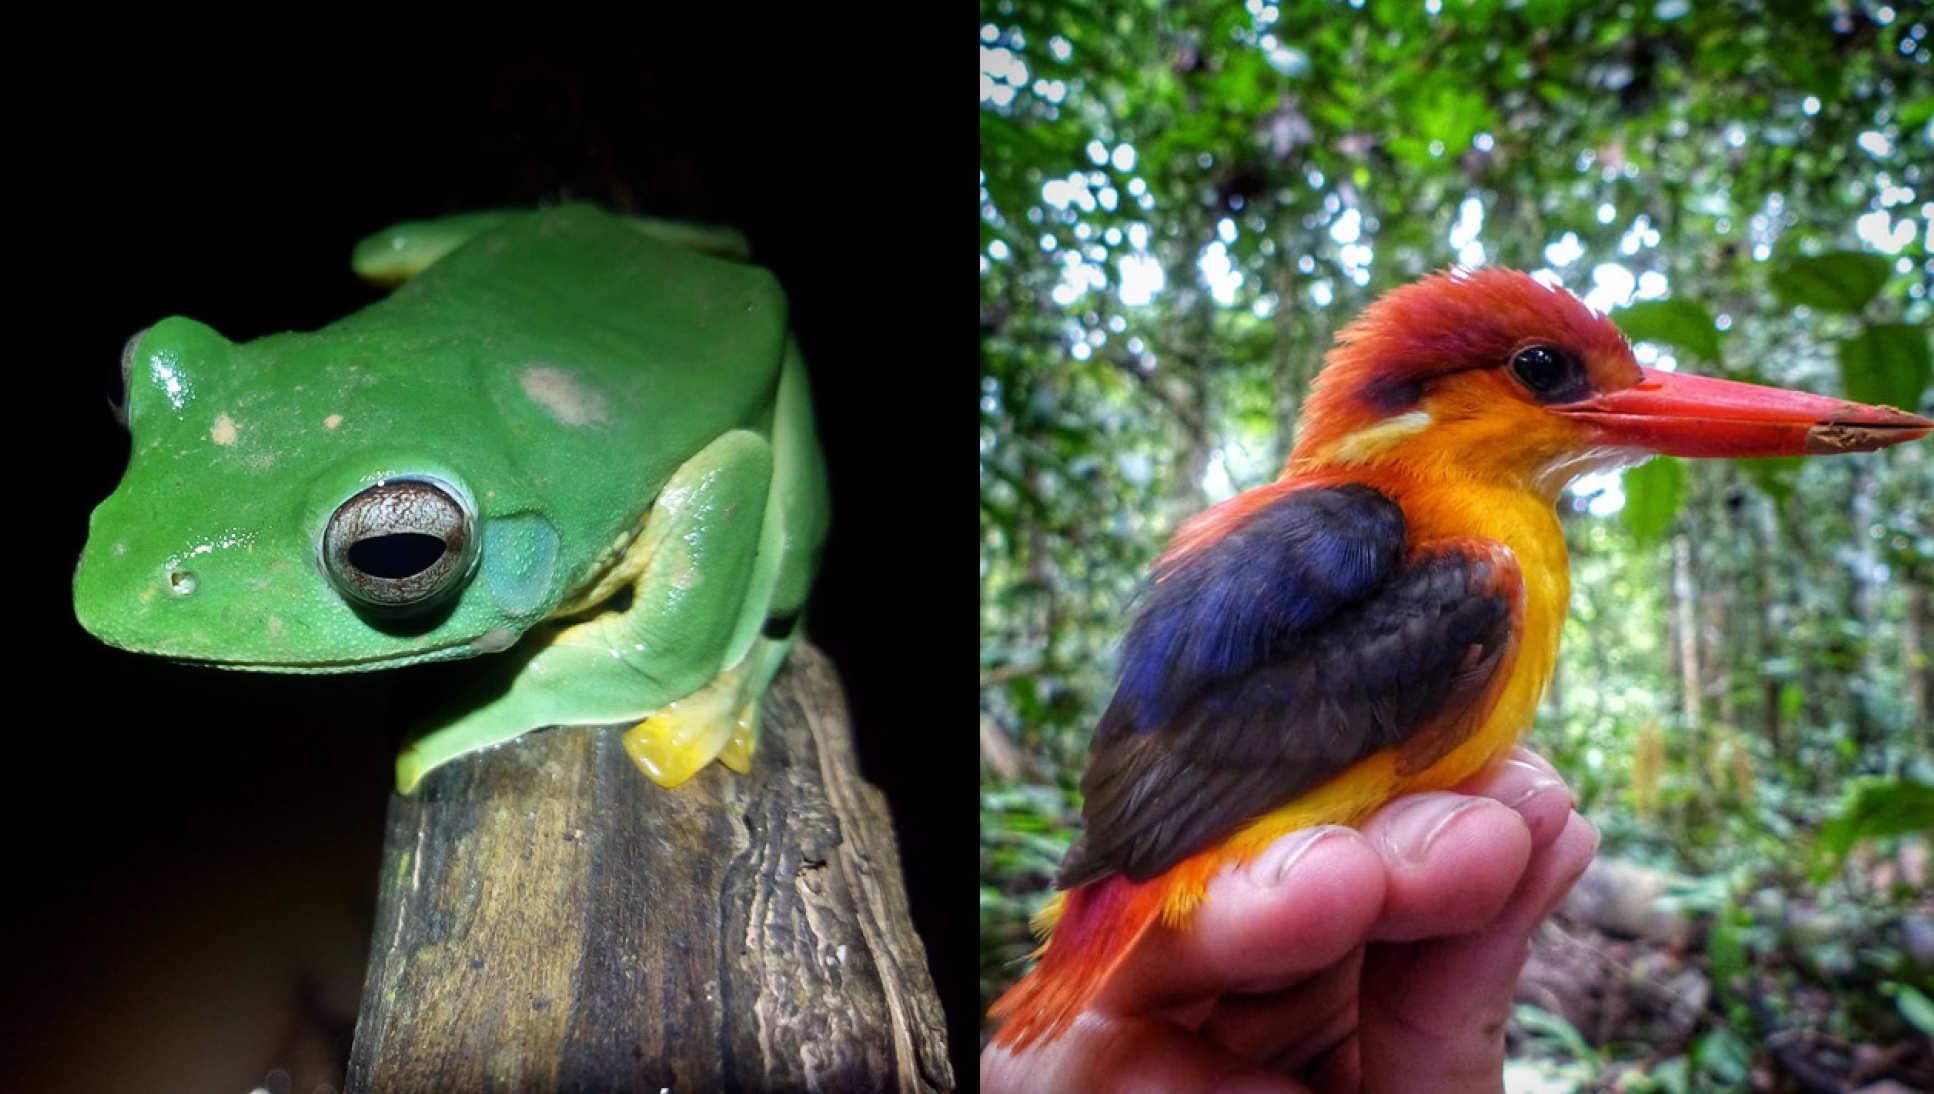 A frog and a bird